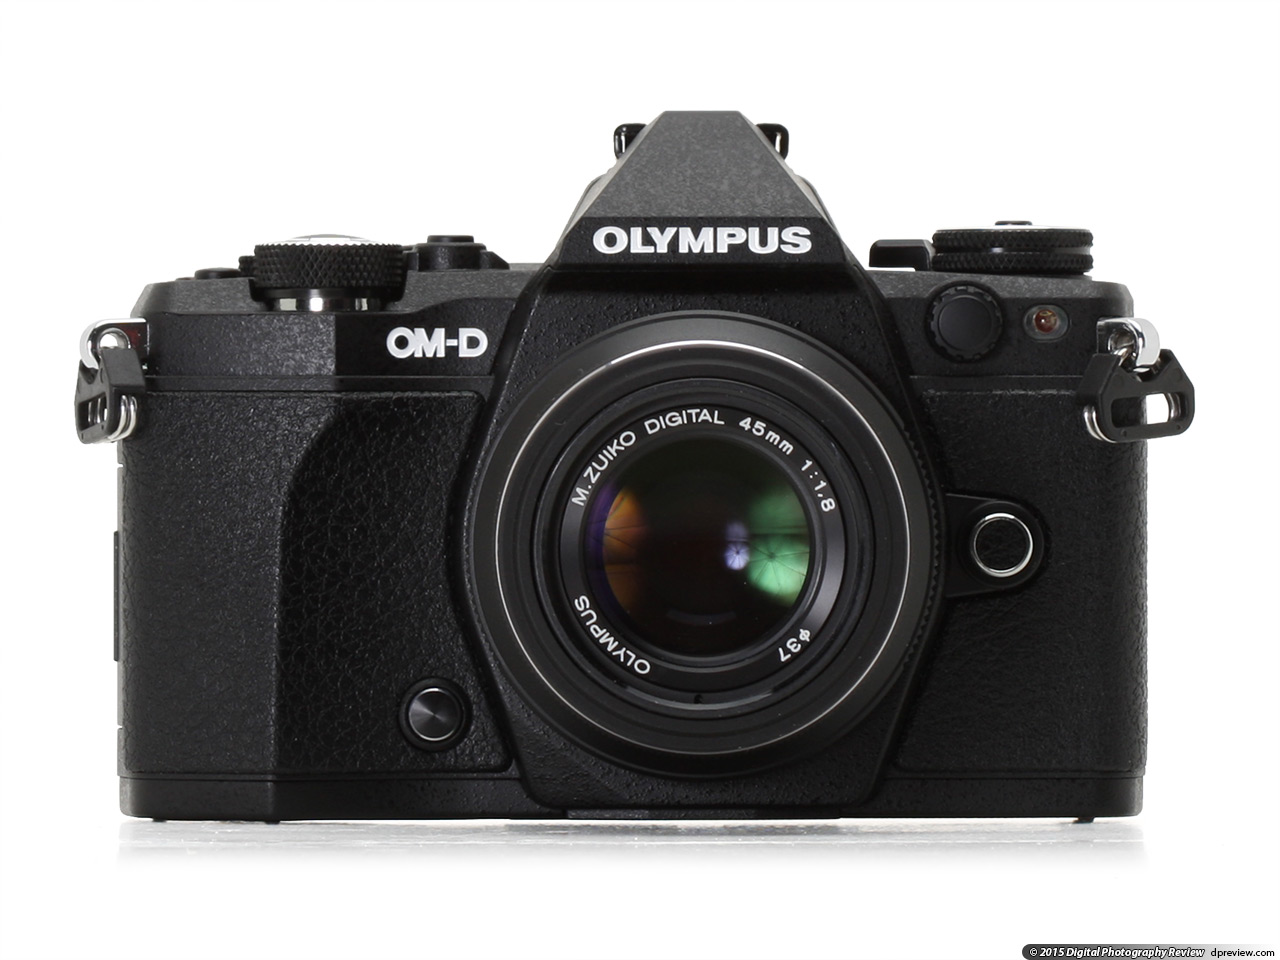 olympus om d e m5 ii review digital photography review rh dpreview com olympus om d e m5 user manual olympus om-d e-m1 user manual pdf